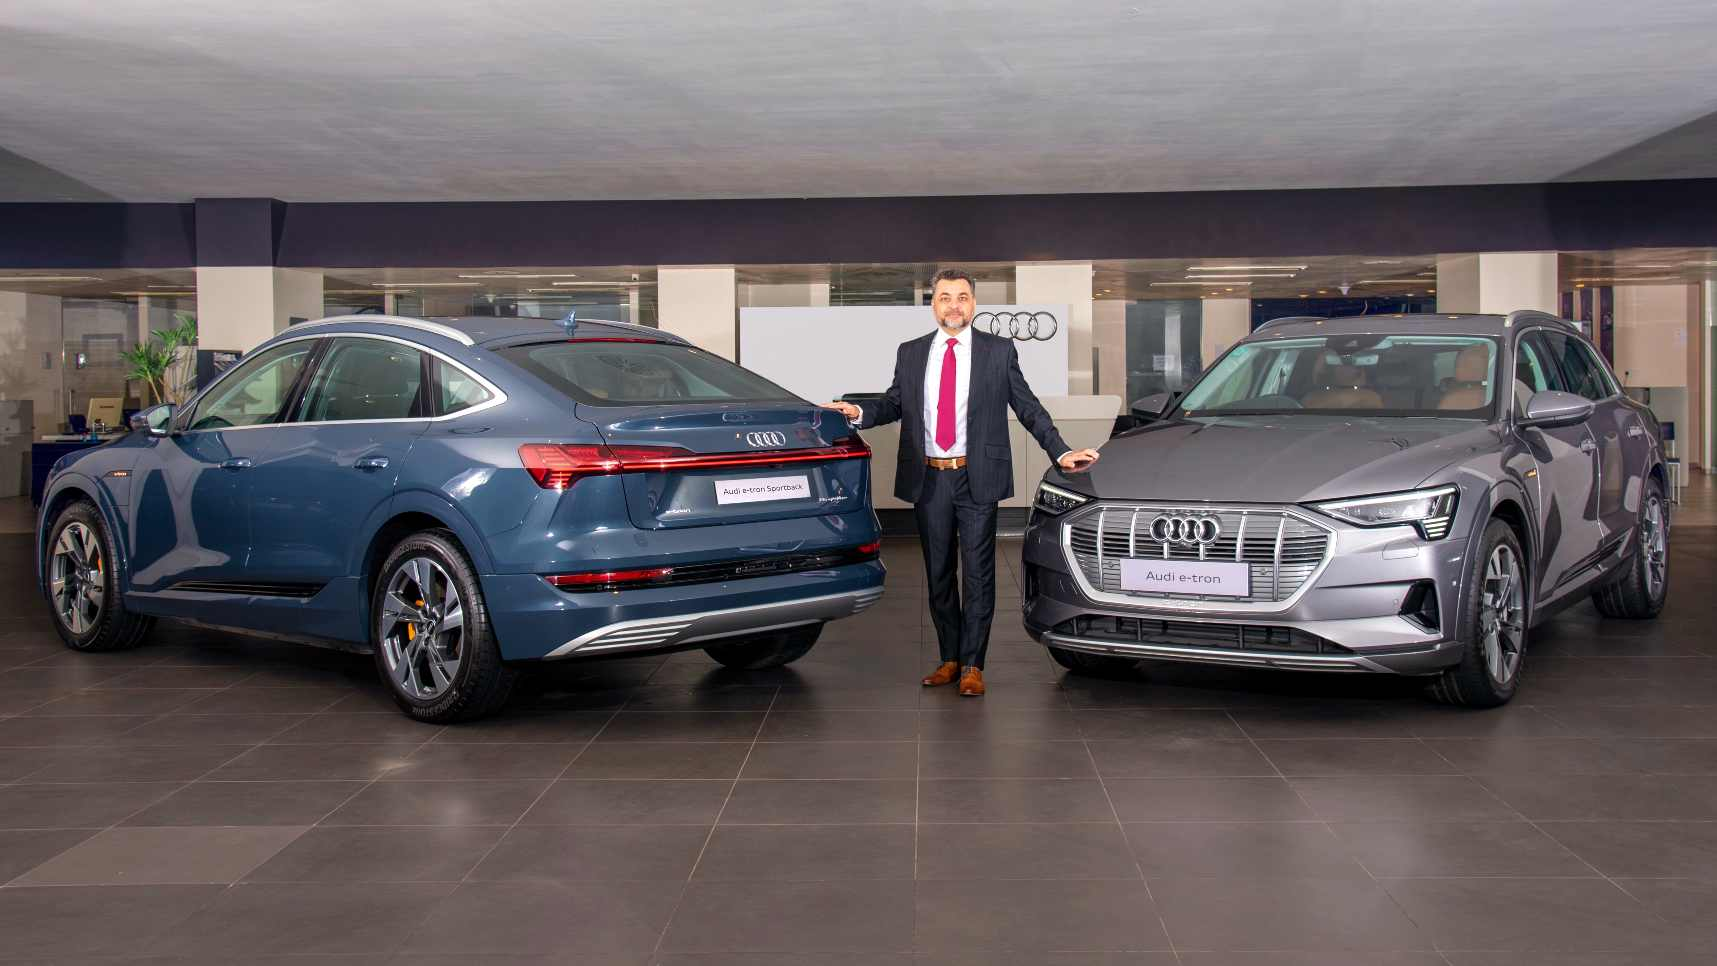 The Audi e-tron Sportback (left) costs roughly Rs 1.5 lakh more than the standard e-tron 55. Image: Audi India